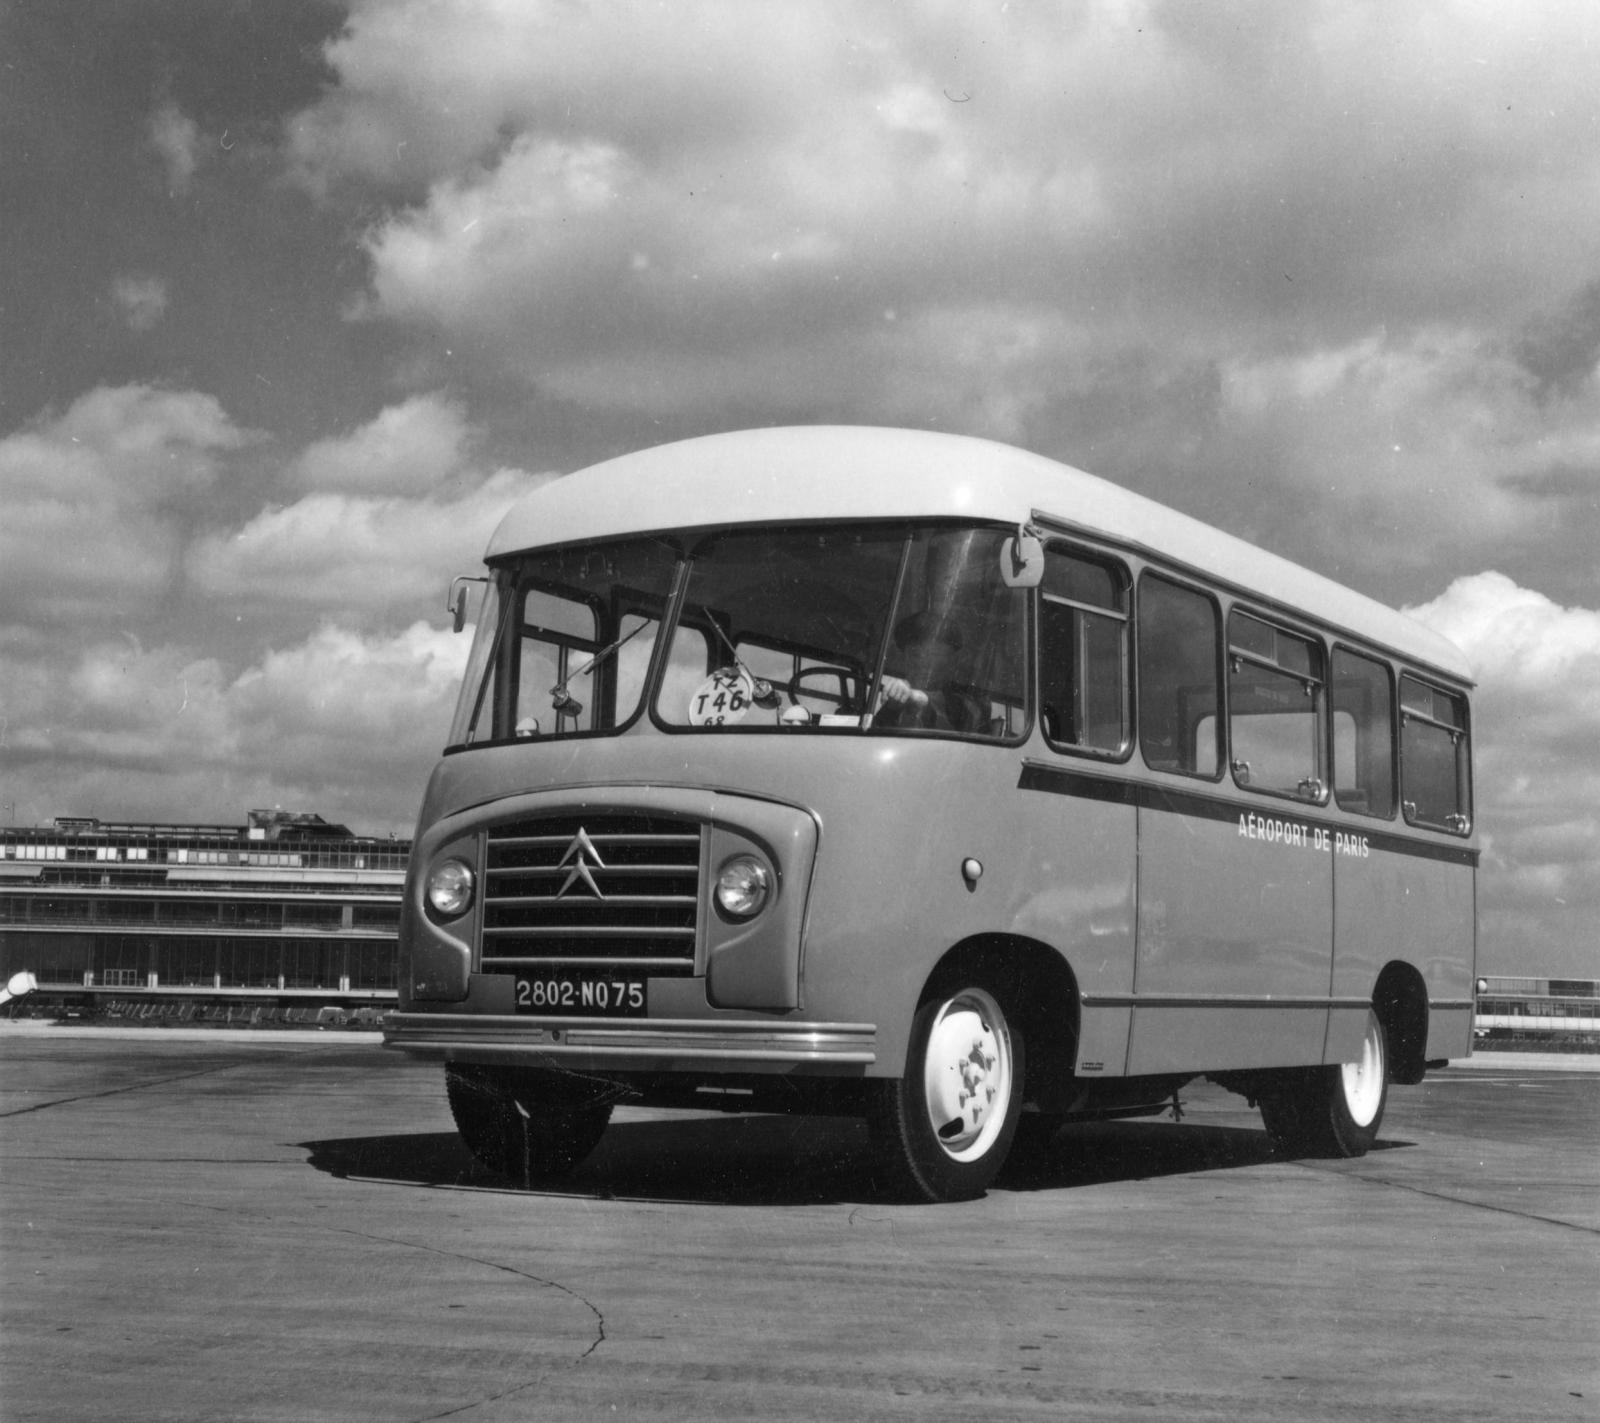 Aéroport de Paris Citroën Buss